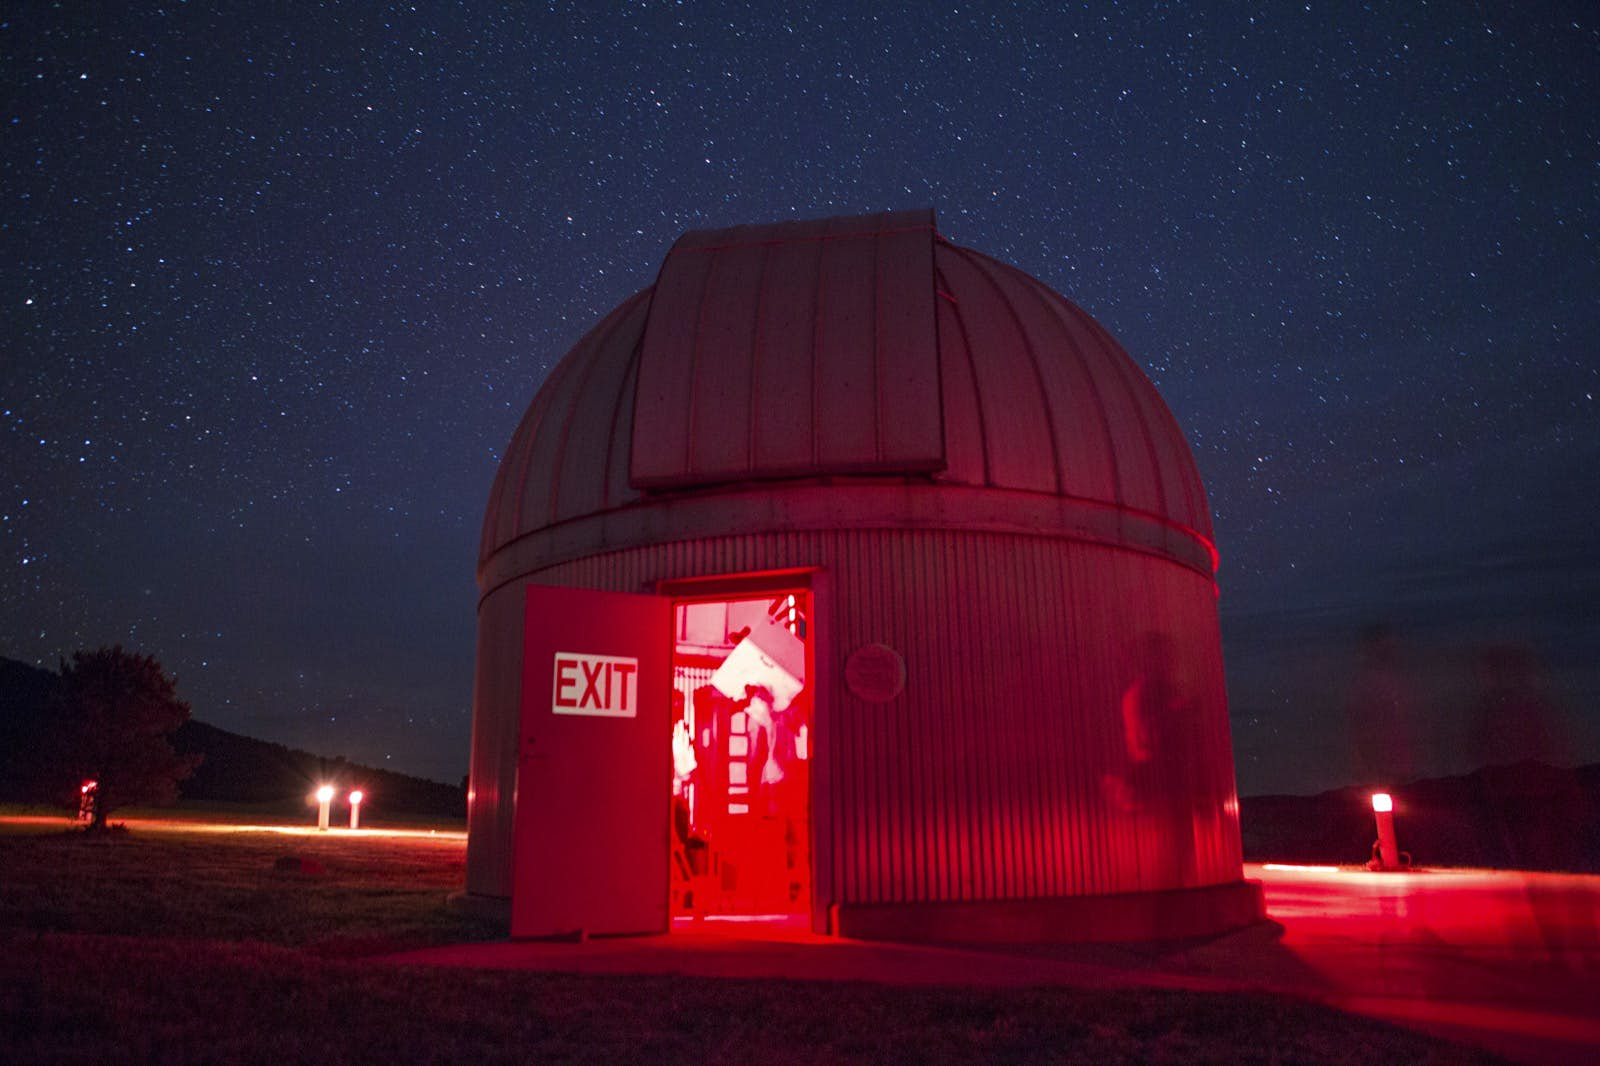 A domed telescope hub at night, lit by red light with the door open, revealing a large 'exit' sign and a blurry interior; Apollo anniversary experiences